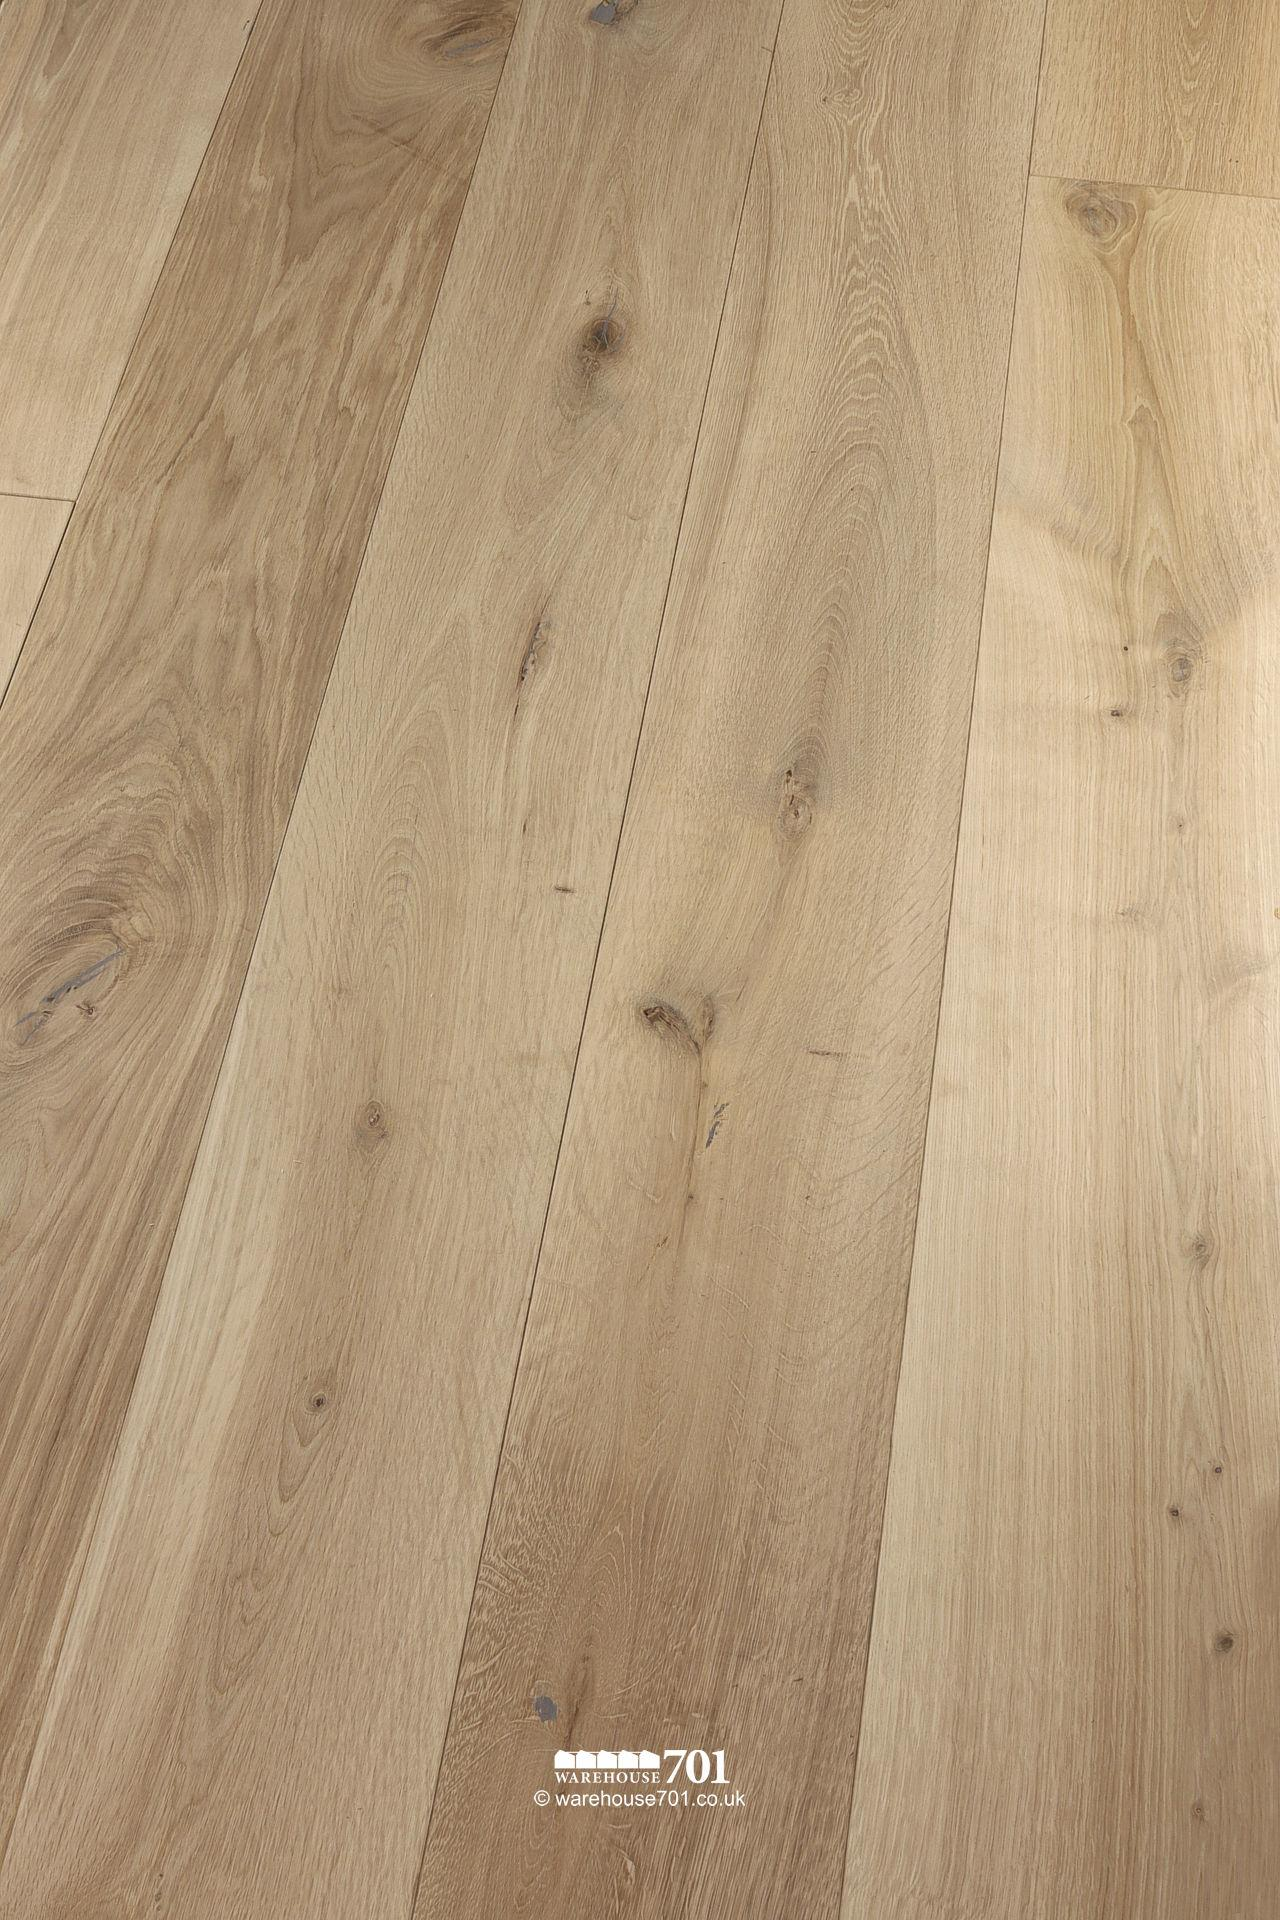 New 'Wessex' Engineered Natural Oak Wood Flooring